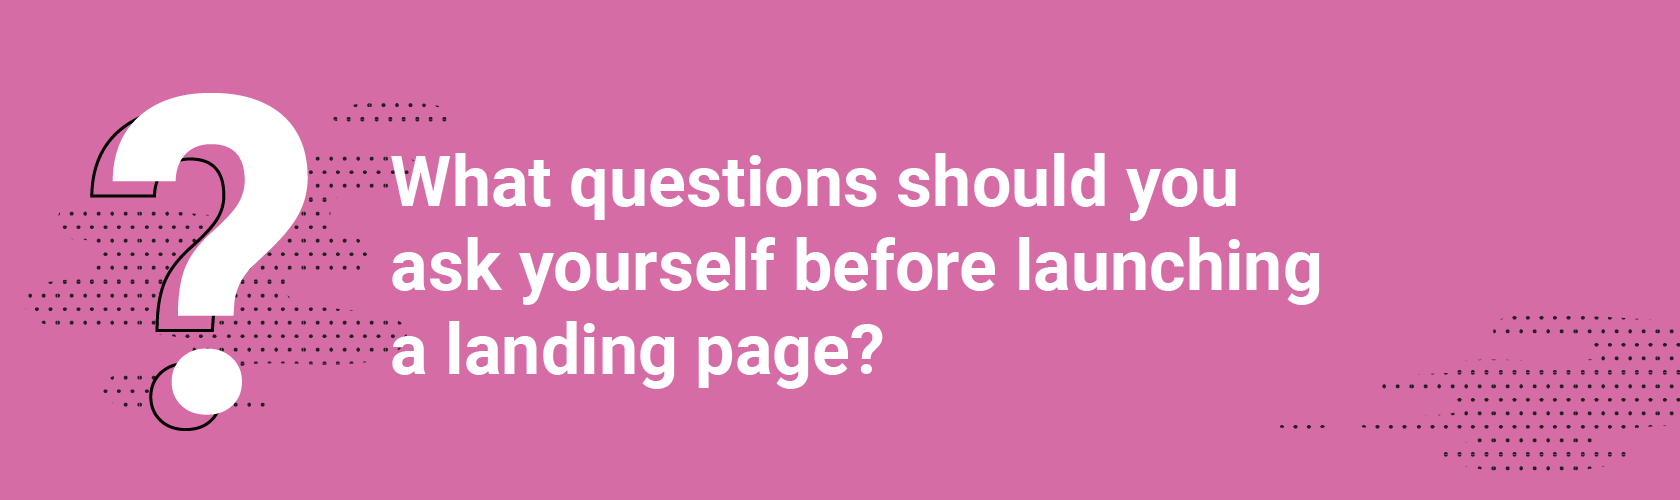 What questions should you ask yourself before launching a landing page?